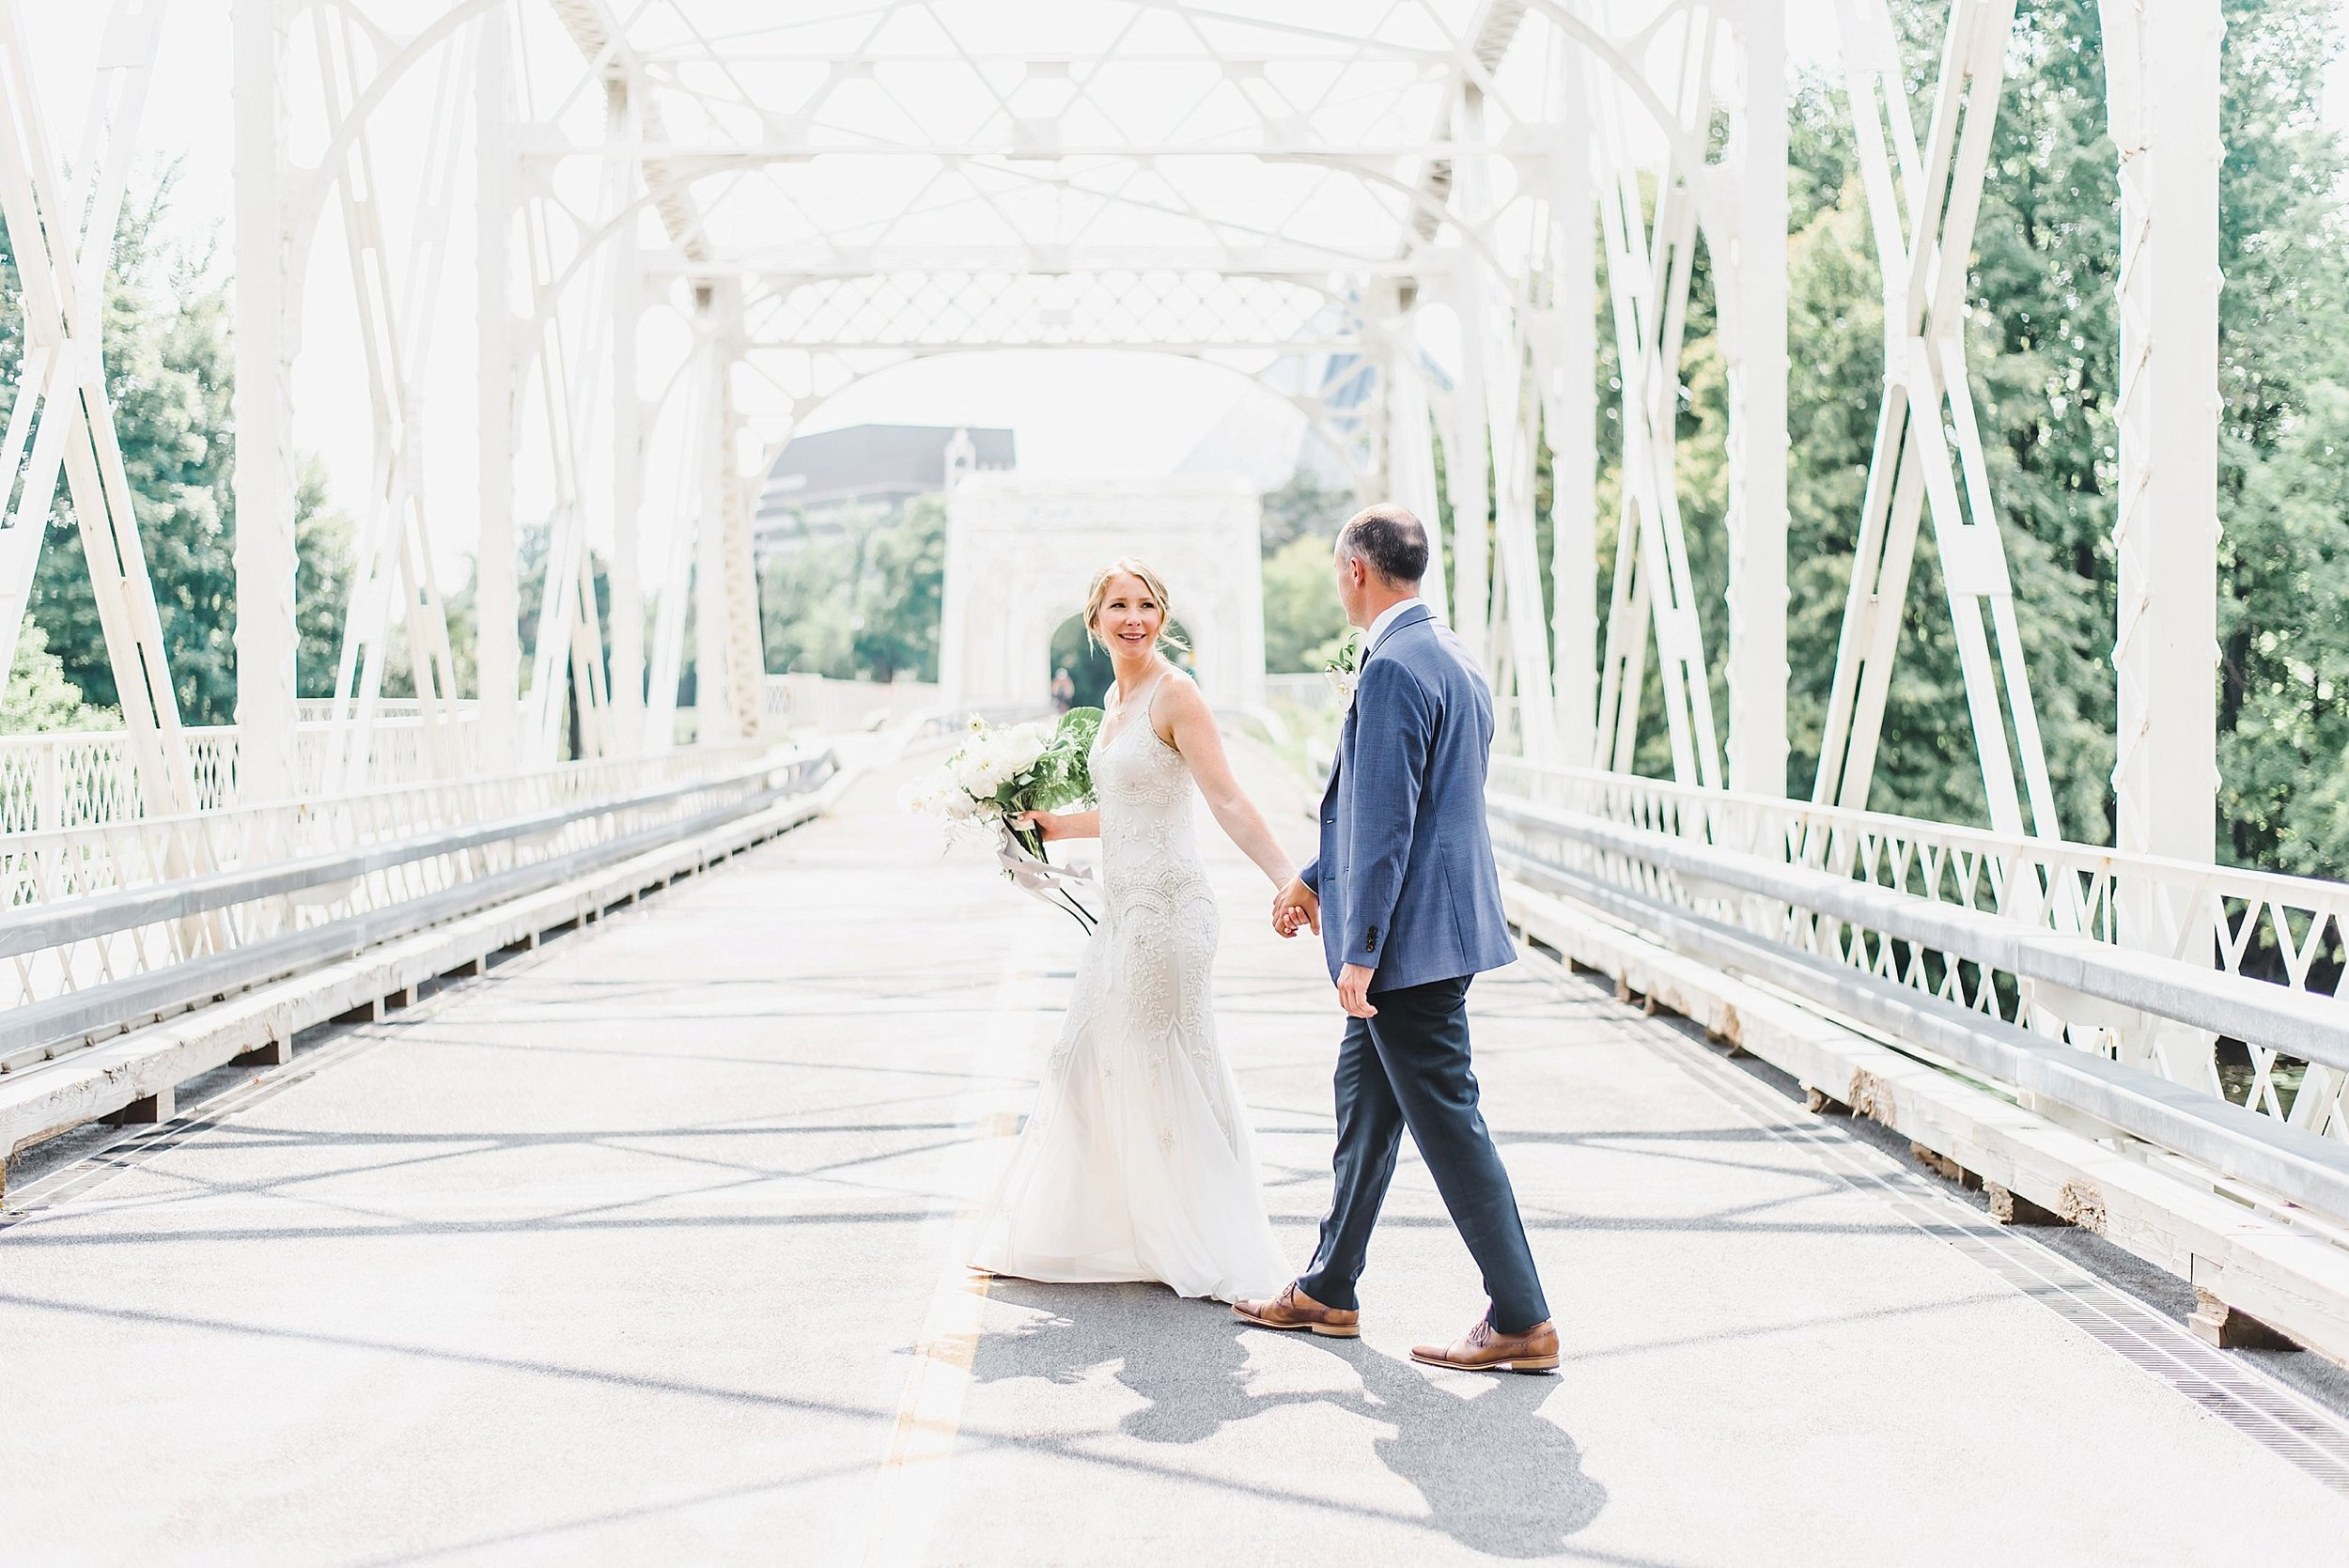 This bridge will always be a beautiful spot for photos!